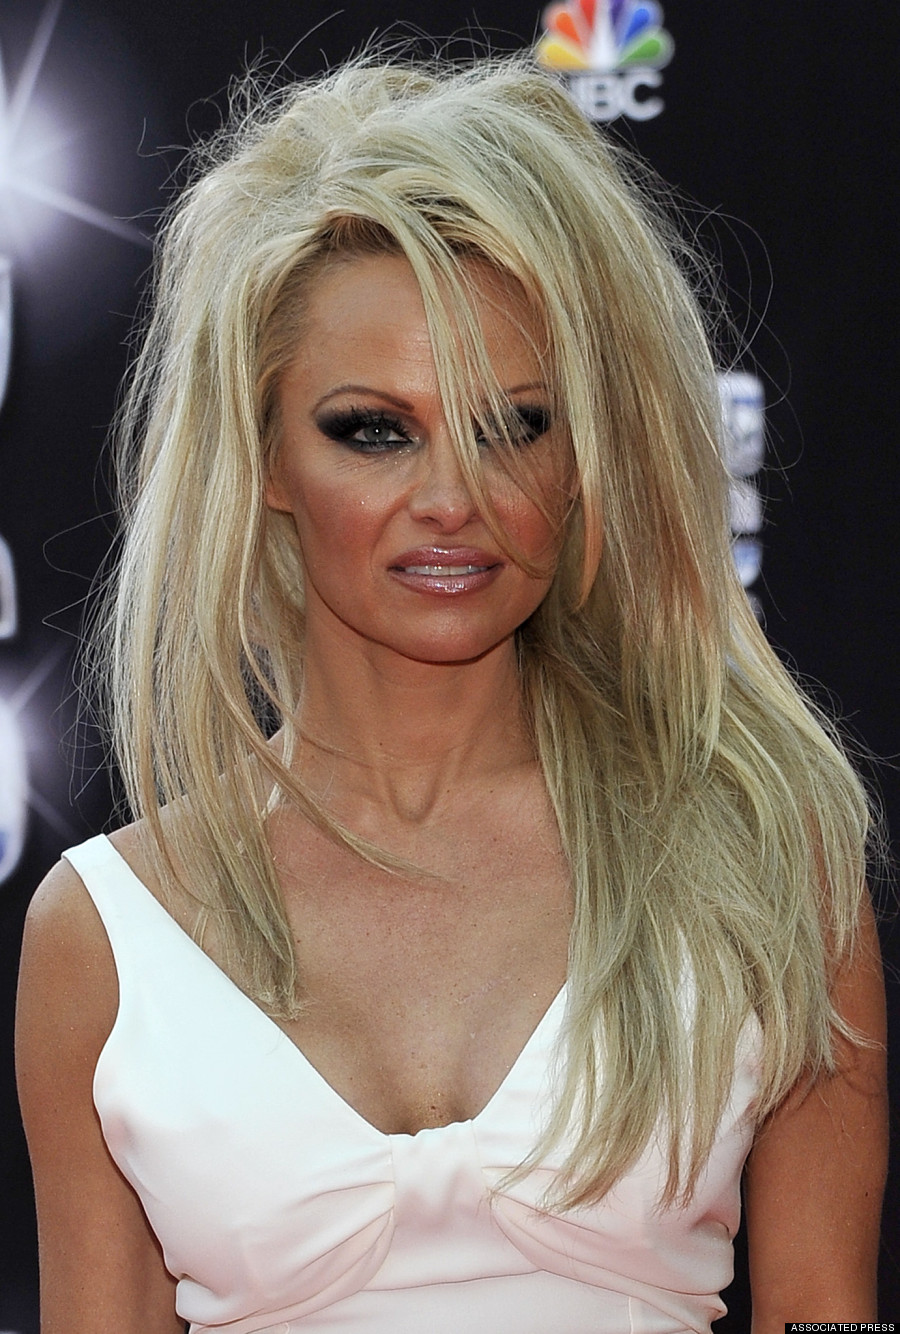 Pamela Anderson Ditches Pixie Cut For Long Hair Extensions!